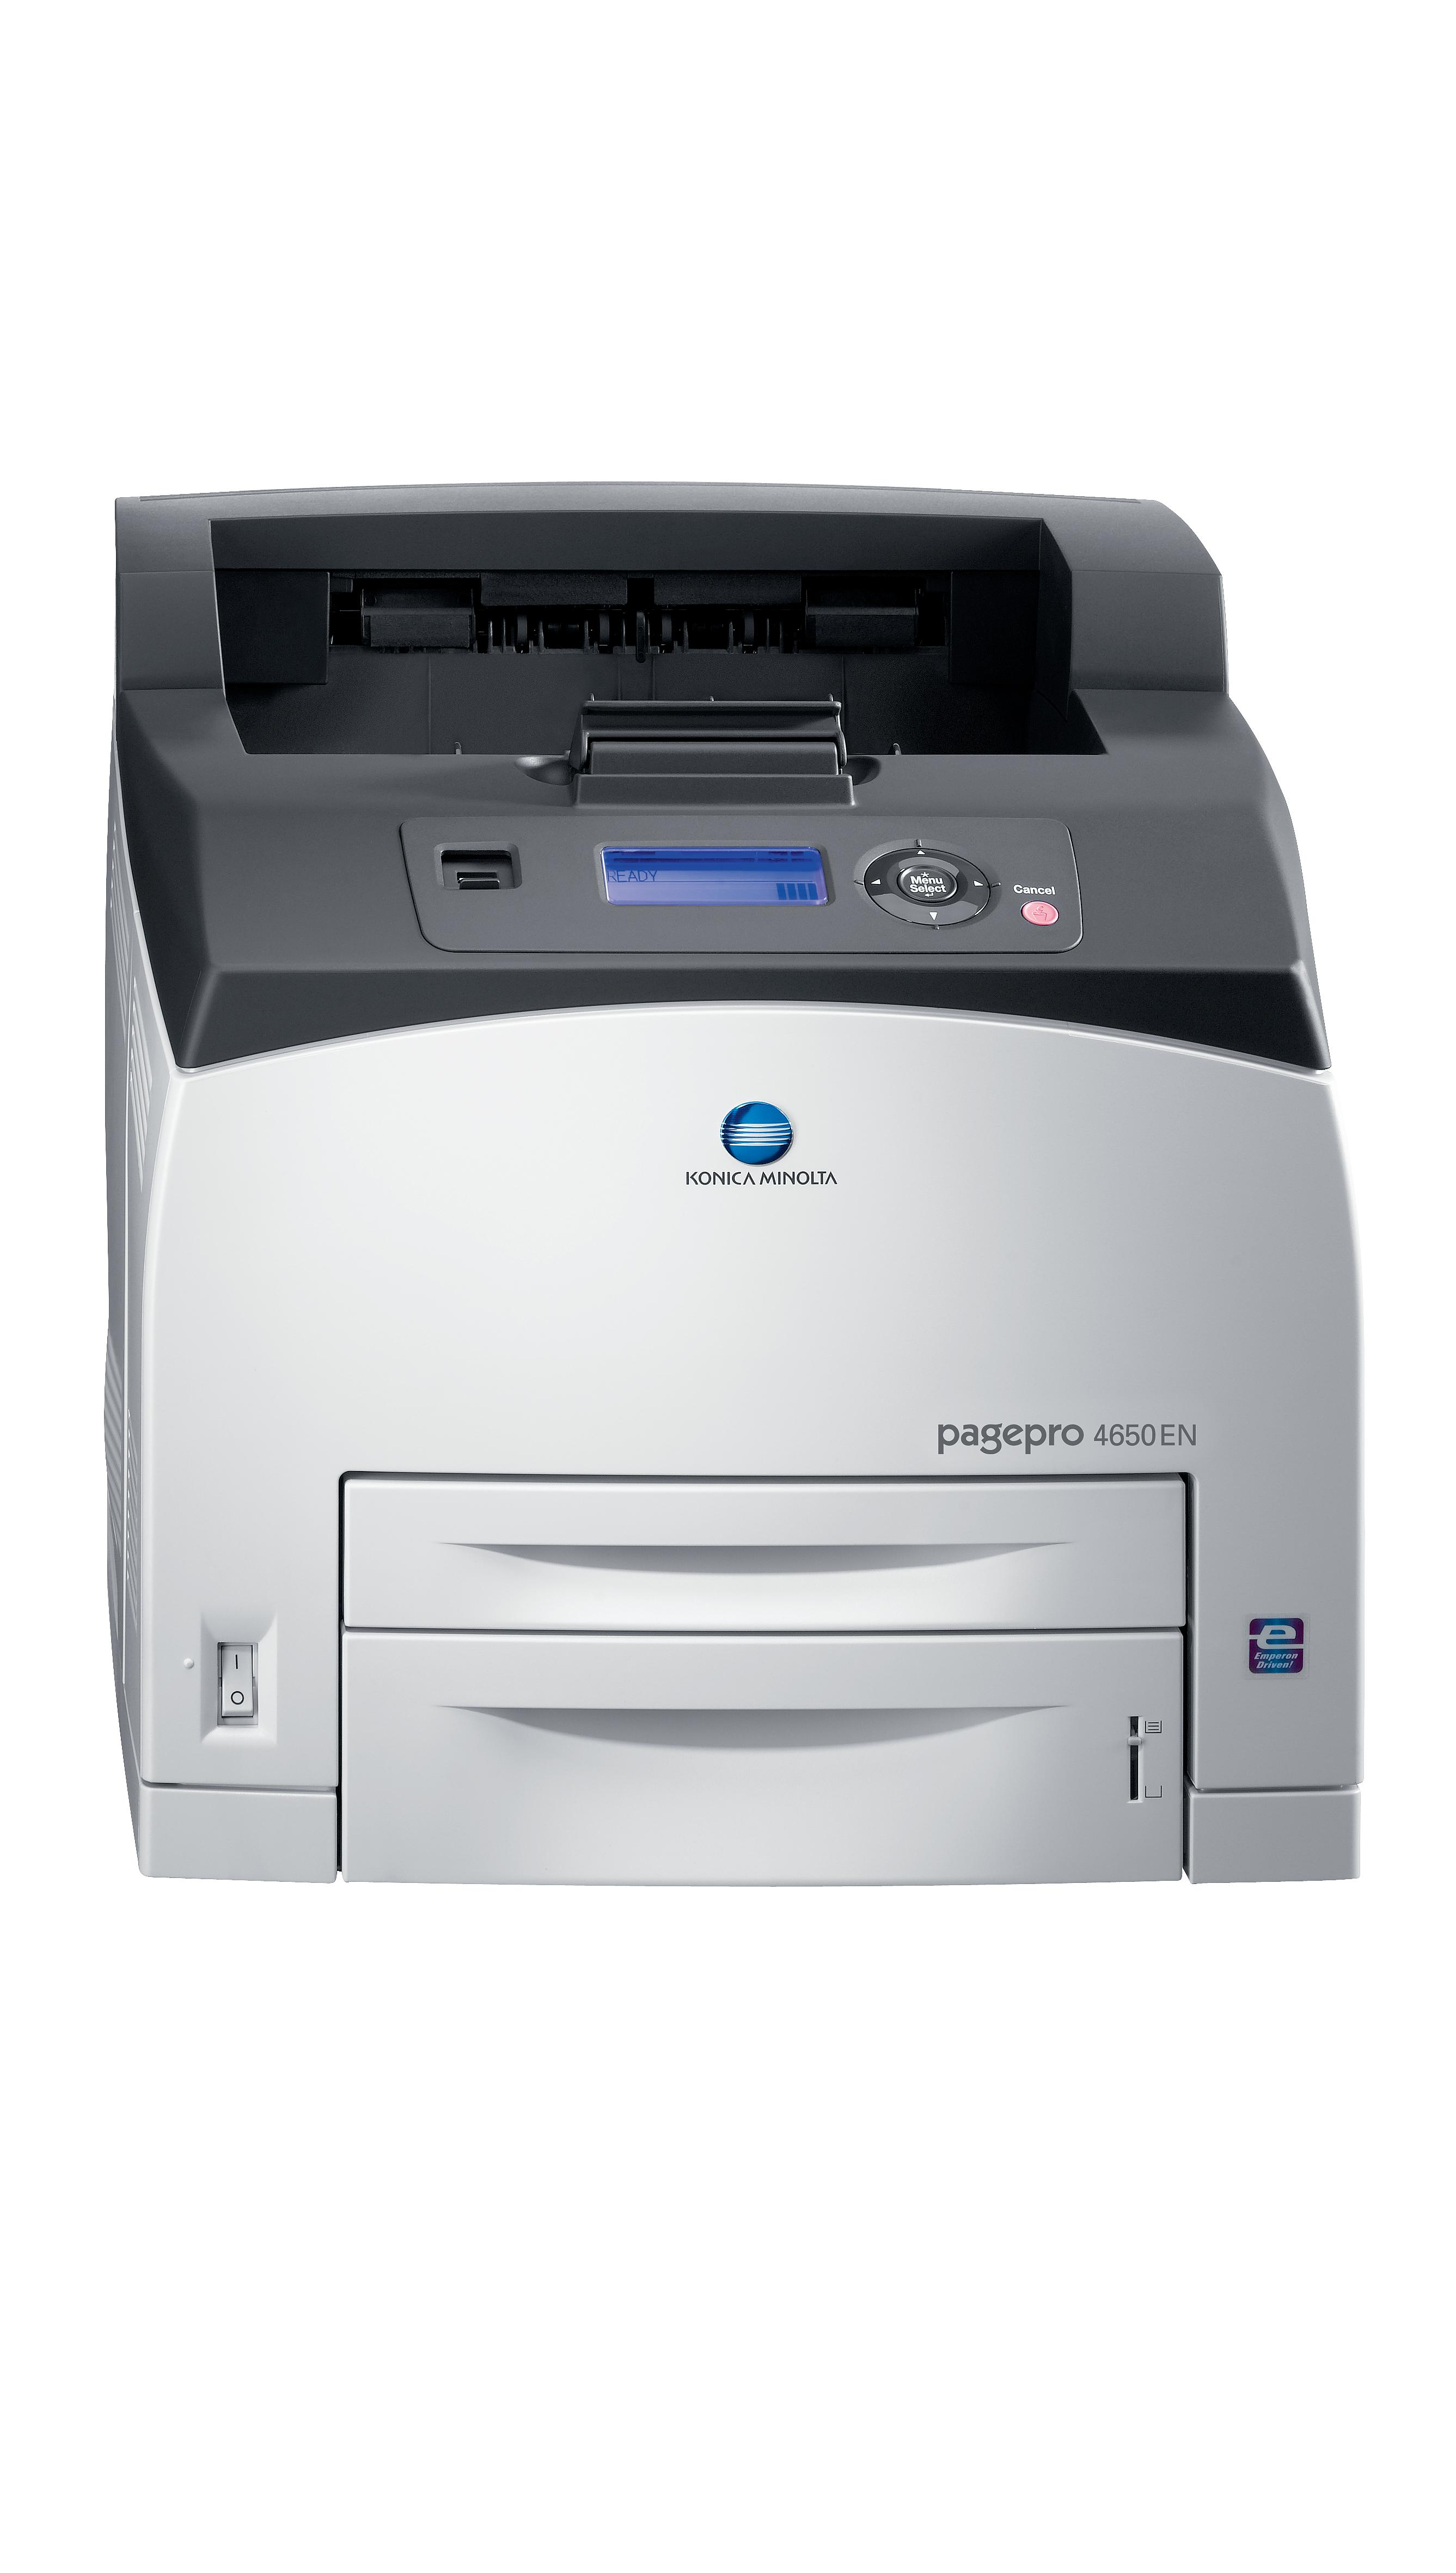 pagepro4650EN_enlarge